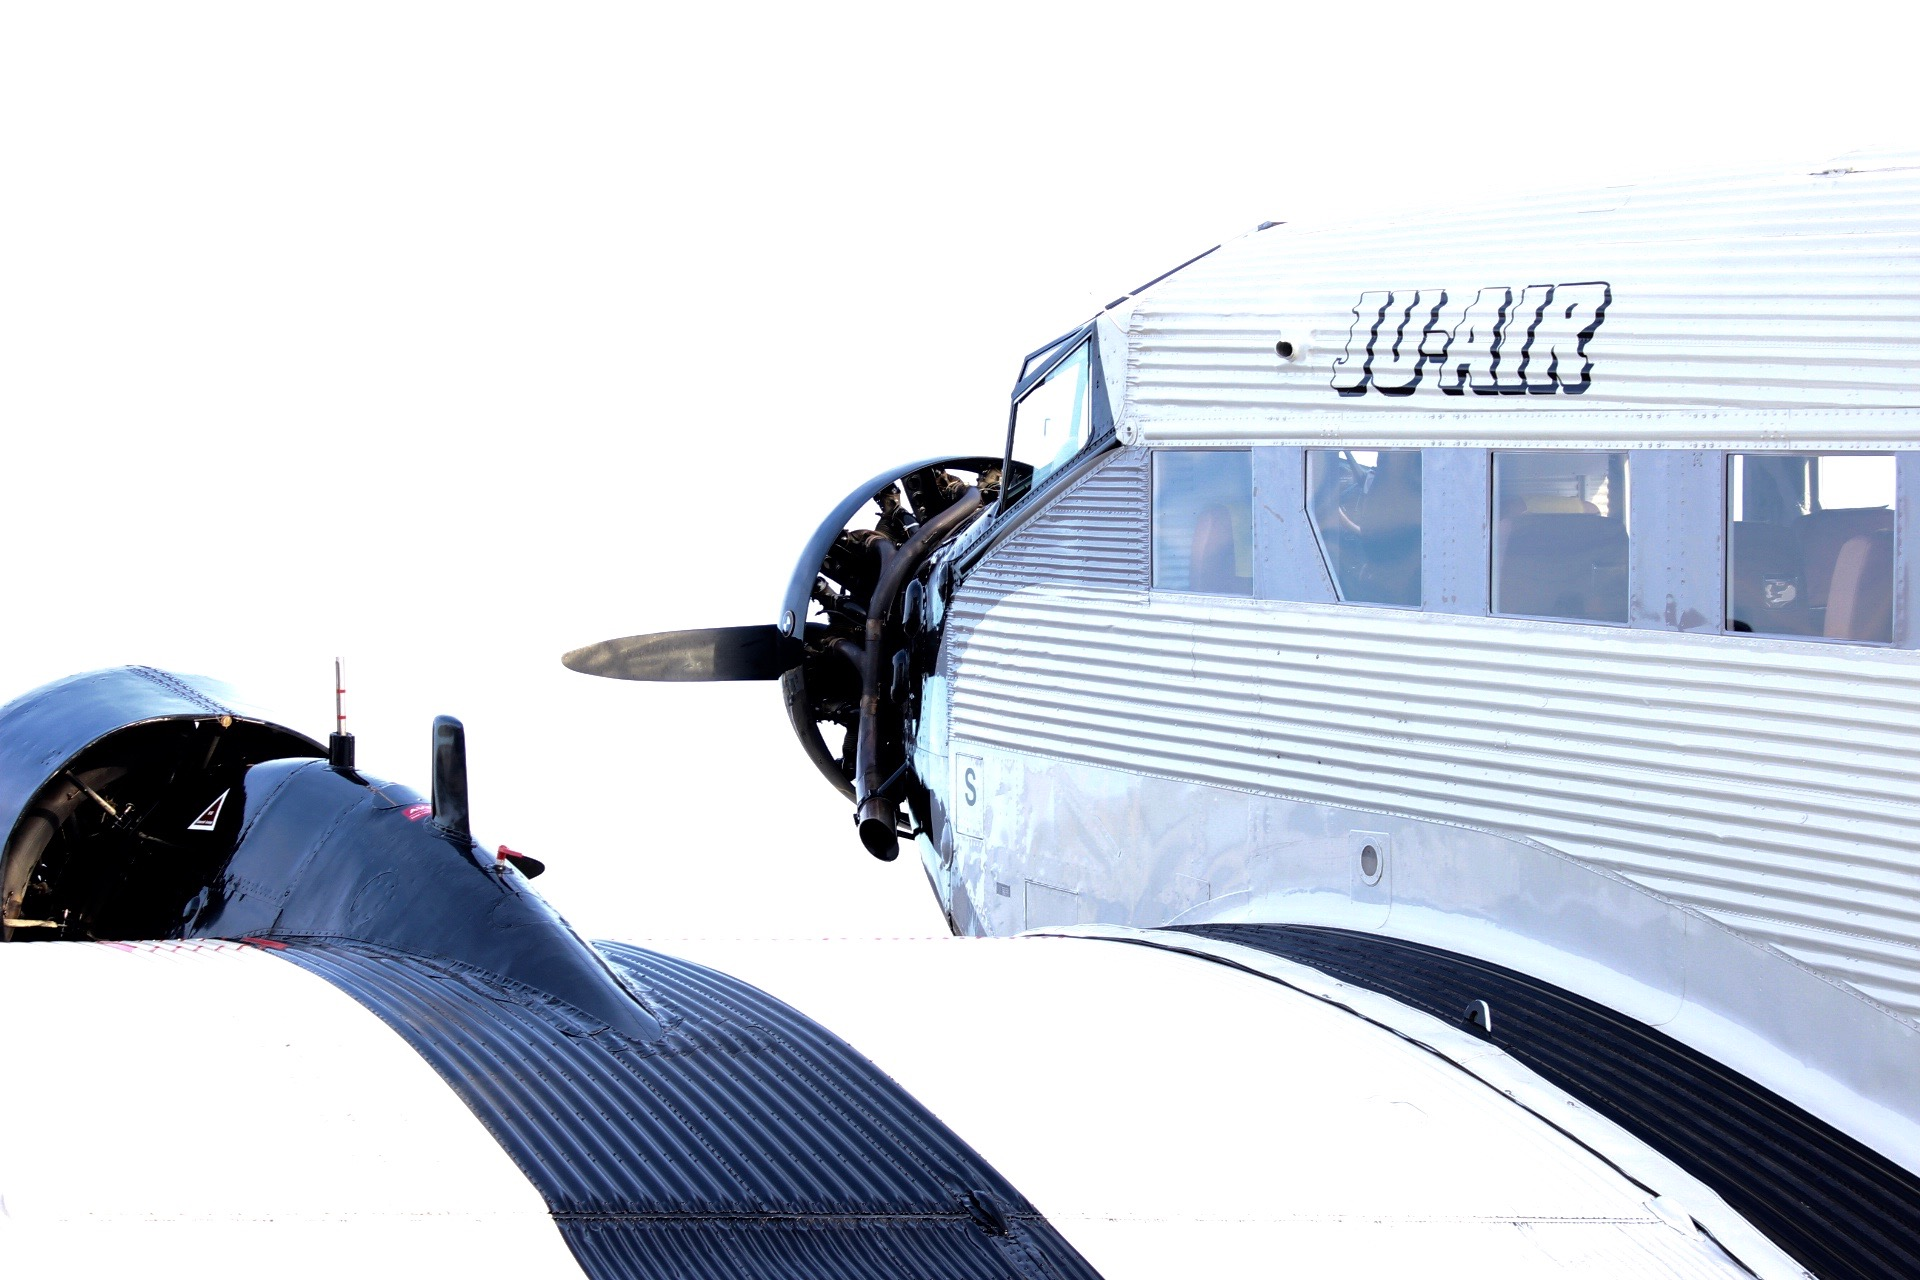 Come fly with us – on-board JU-52 - IWC Pilot's Watches - SIHH 2016 - 2